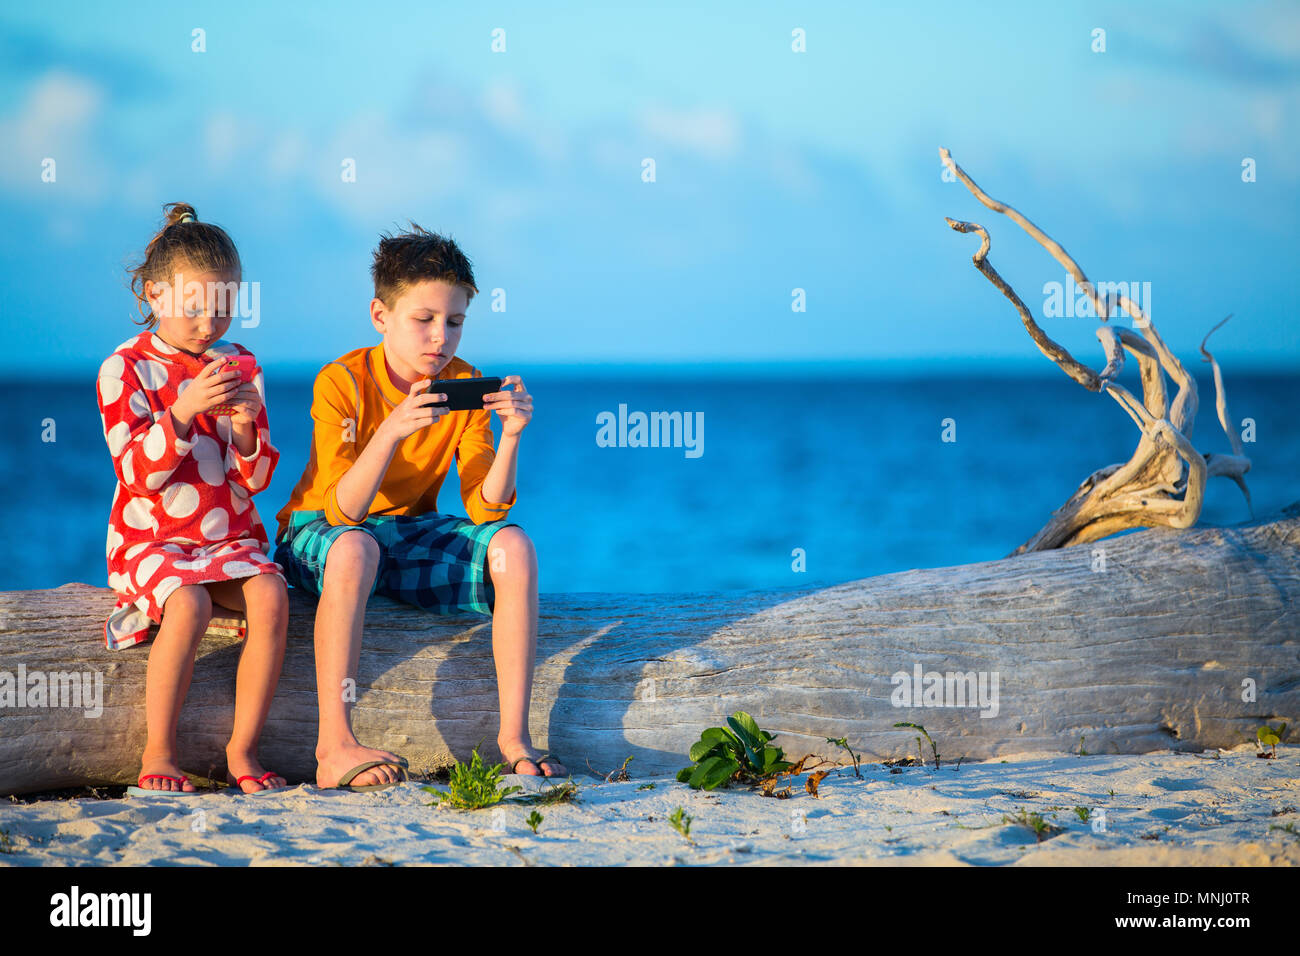 Kids playing on a portable game device or smartphone at beach - Stock Image